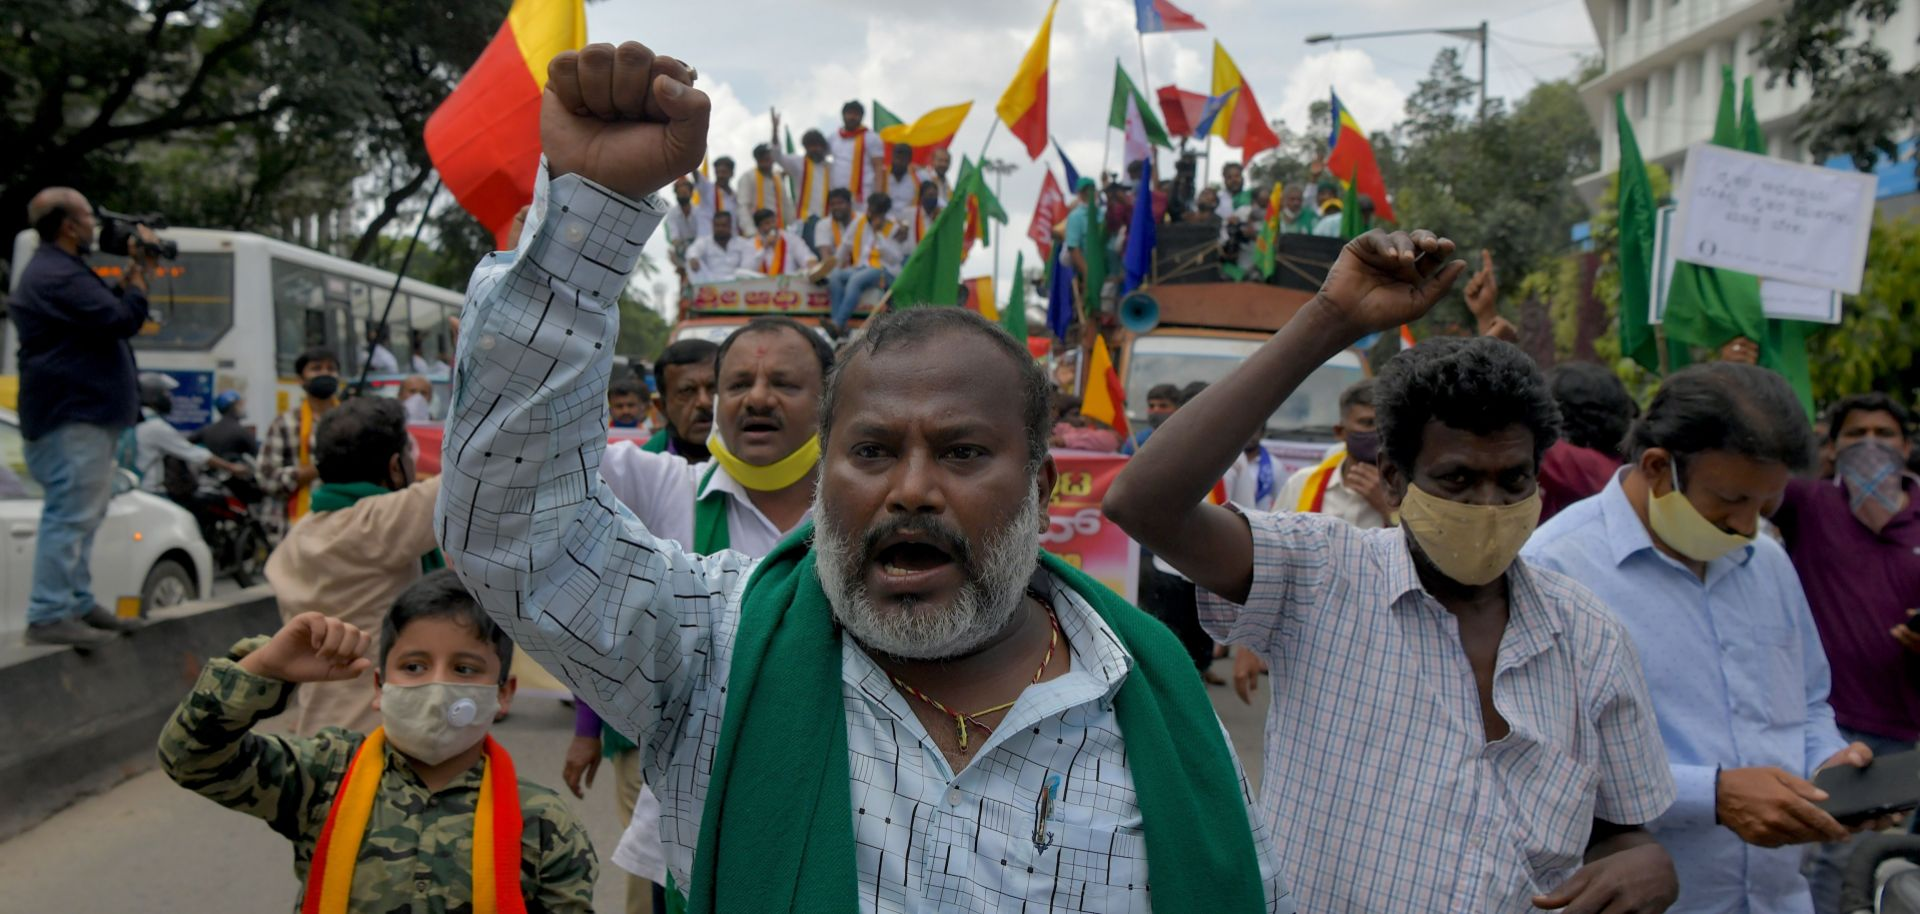 Farmers in Bangalore, India, stage an anti-government demonstration to protest against the recent passing of new agricultural reforms on Sept. 28, 2020.